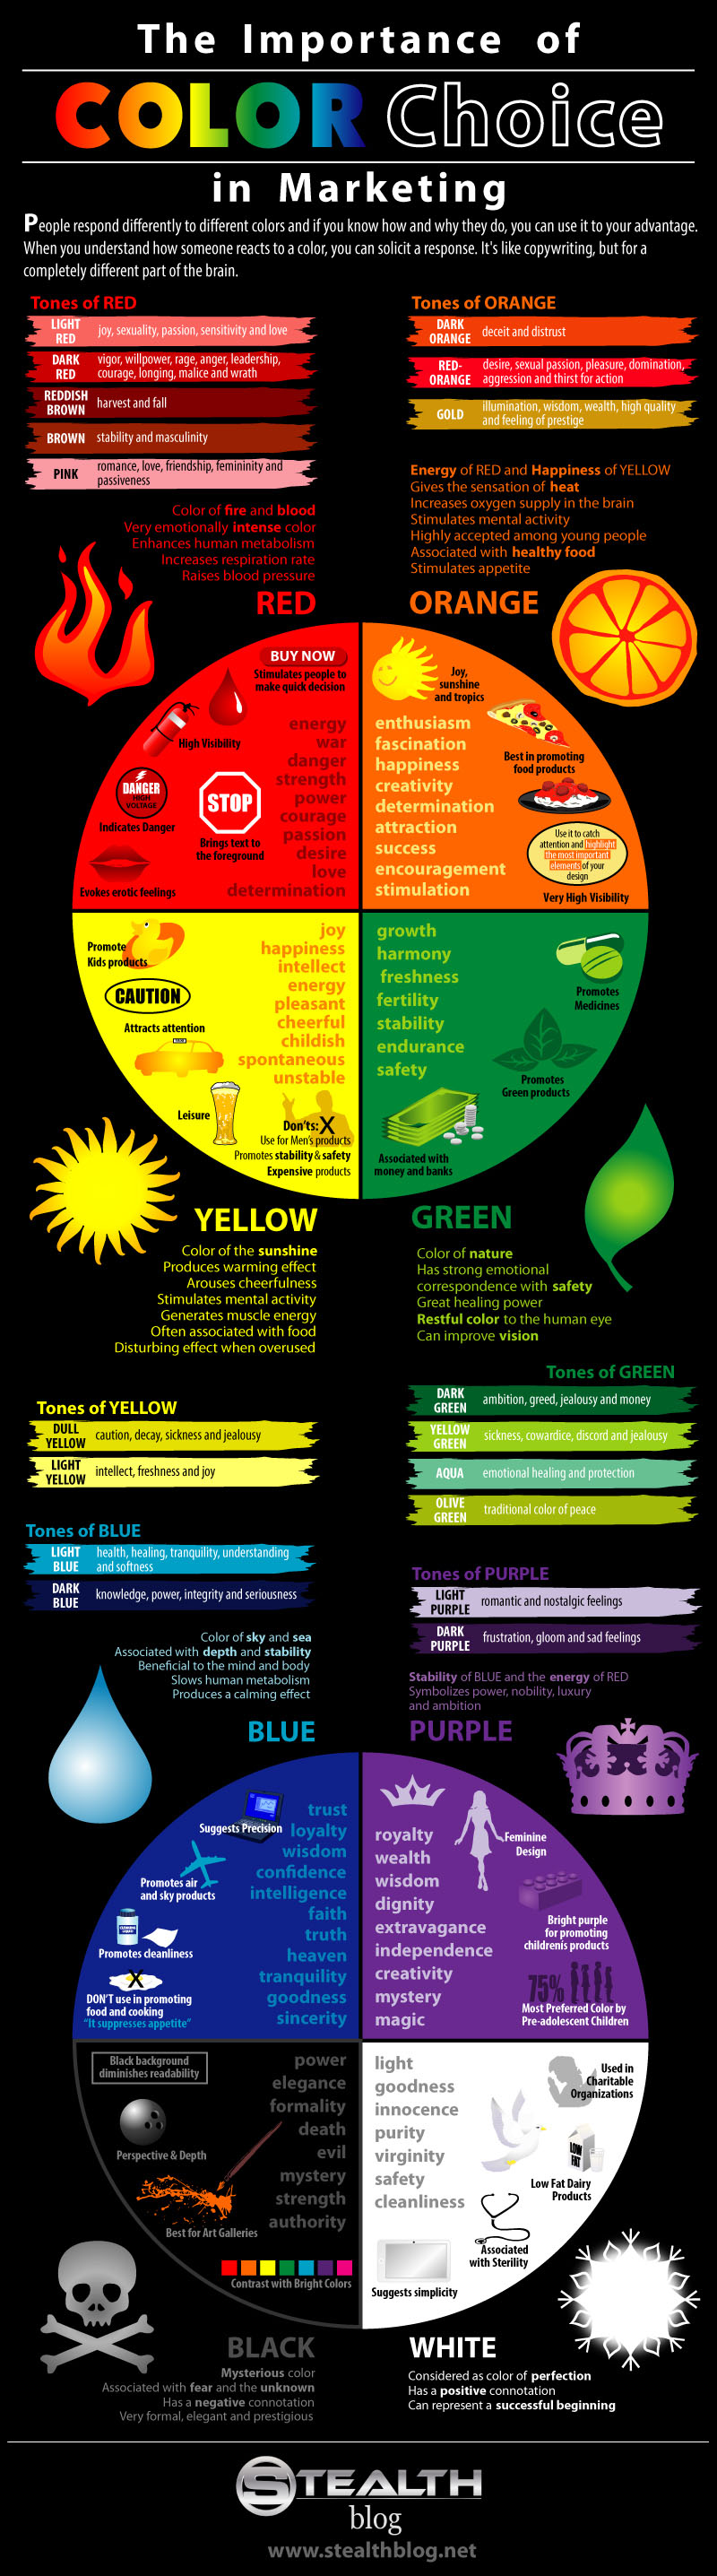 Color Choice is Extremely Important #Infographic